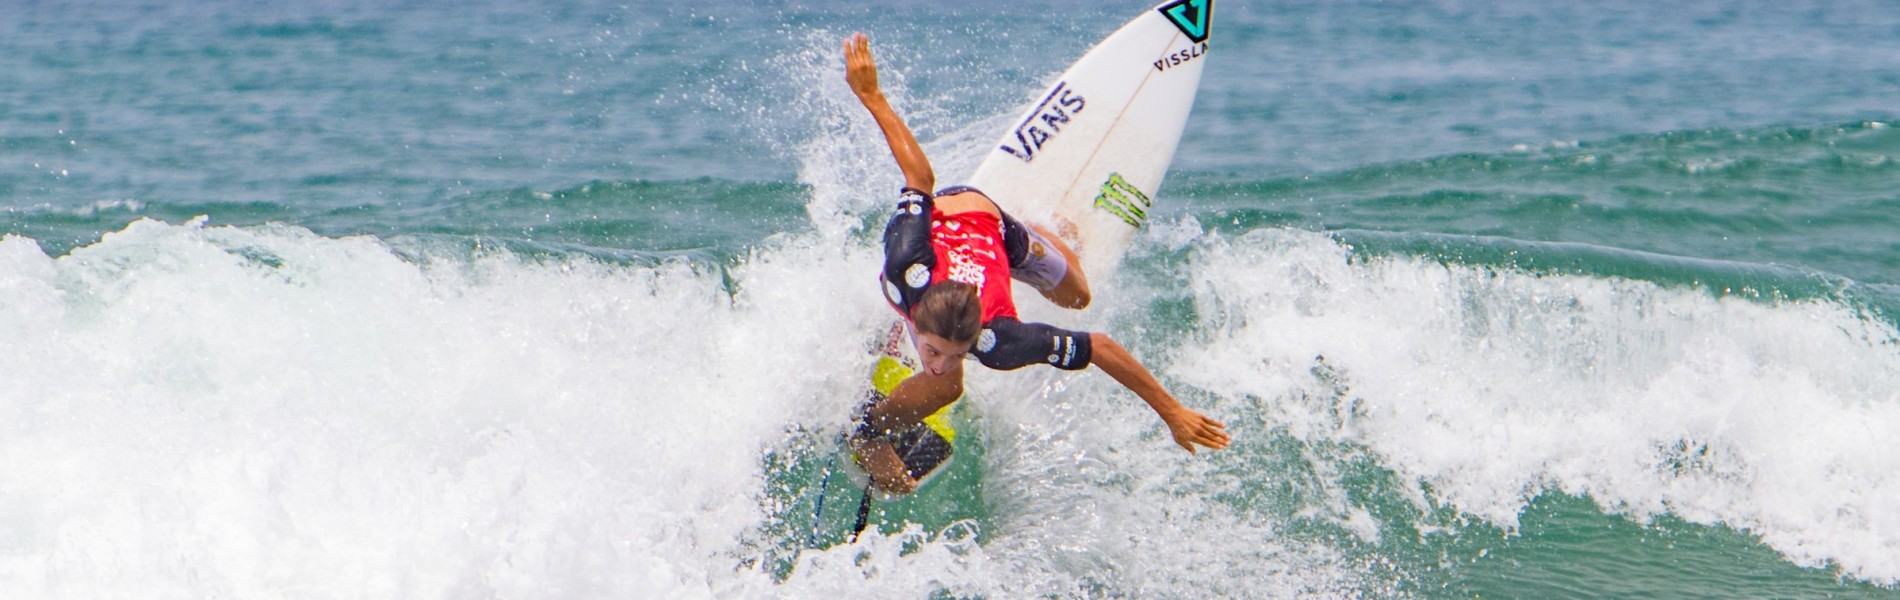 Jhony Corzo won 3rd place at VANS Surf Open Acapulco